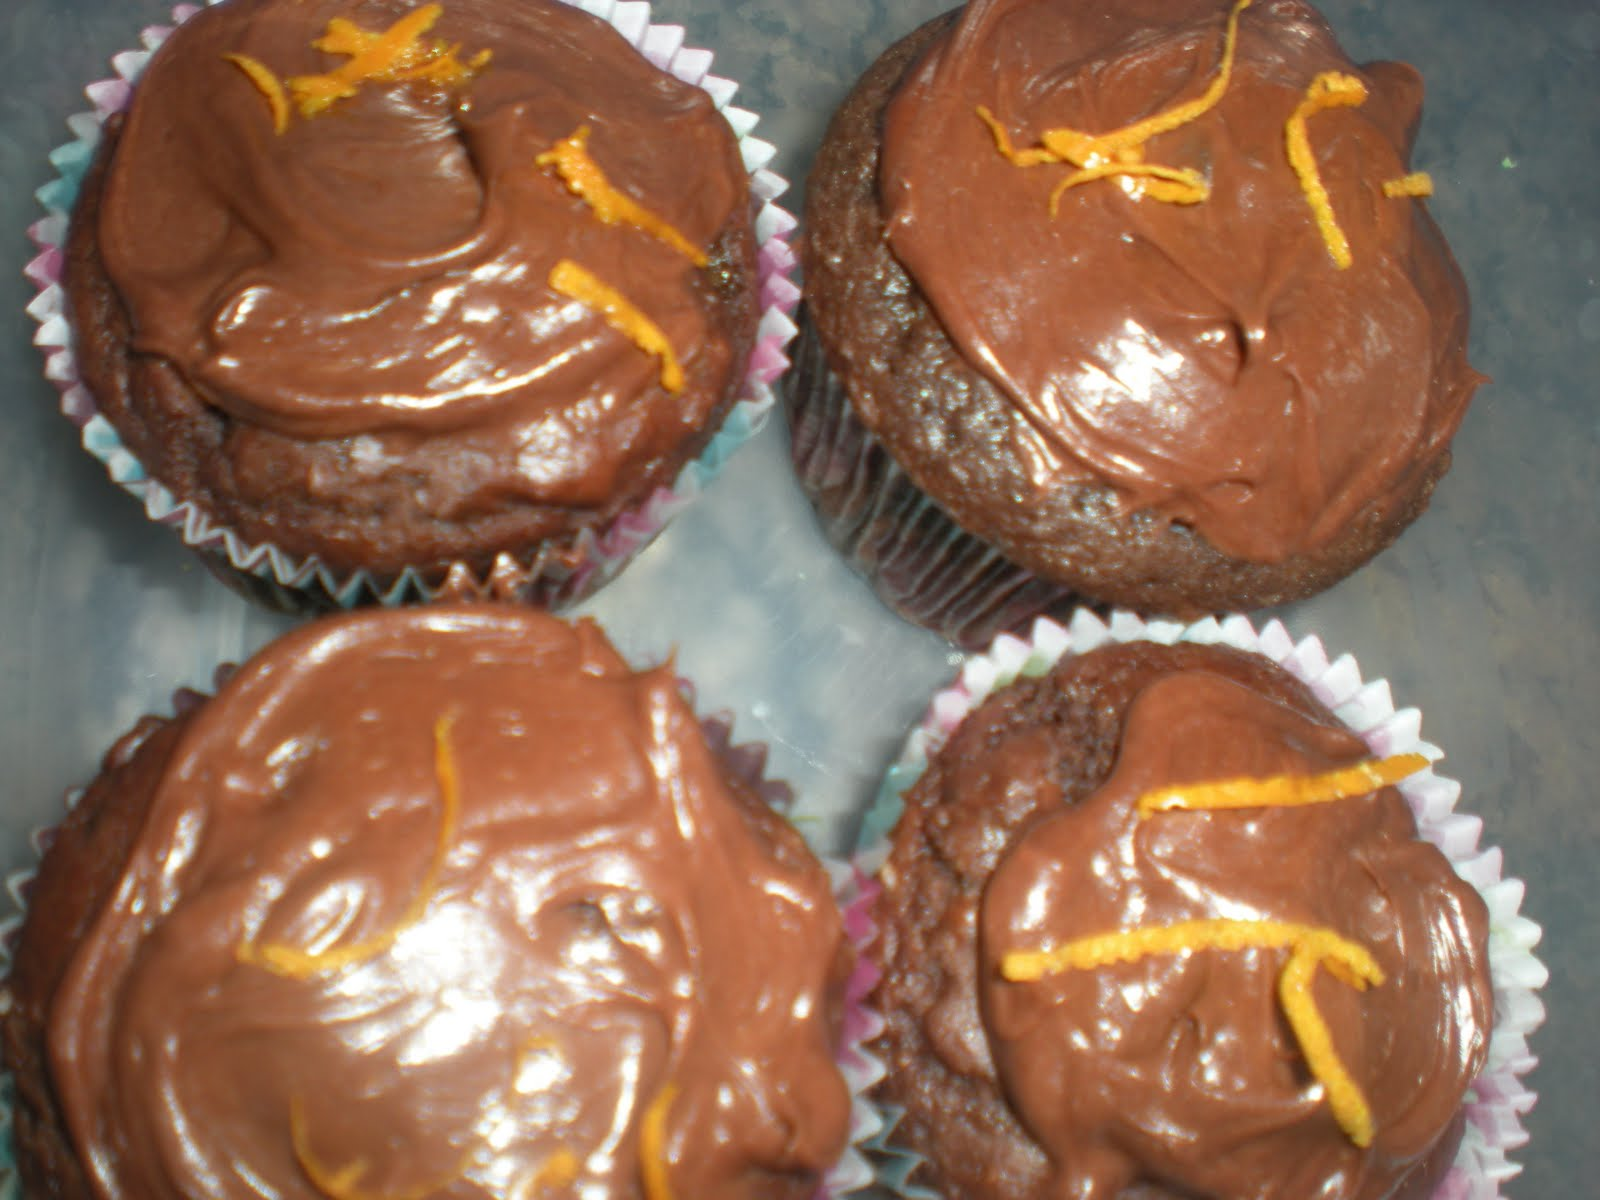 ... Kisses and Tasty Dishes: Day #51: Frosted Chocolate Orange Muffins